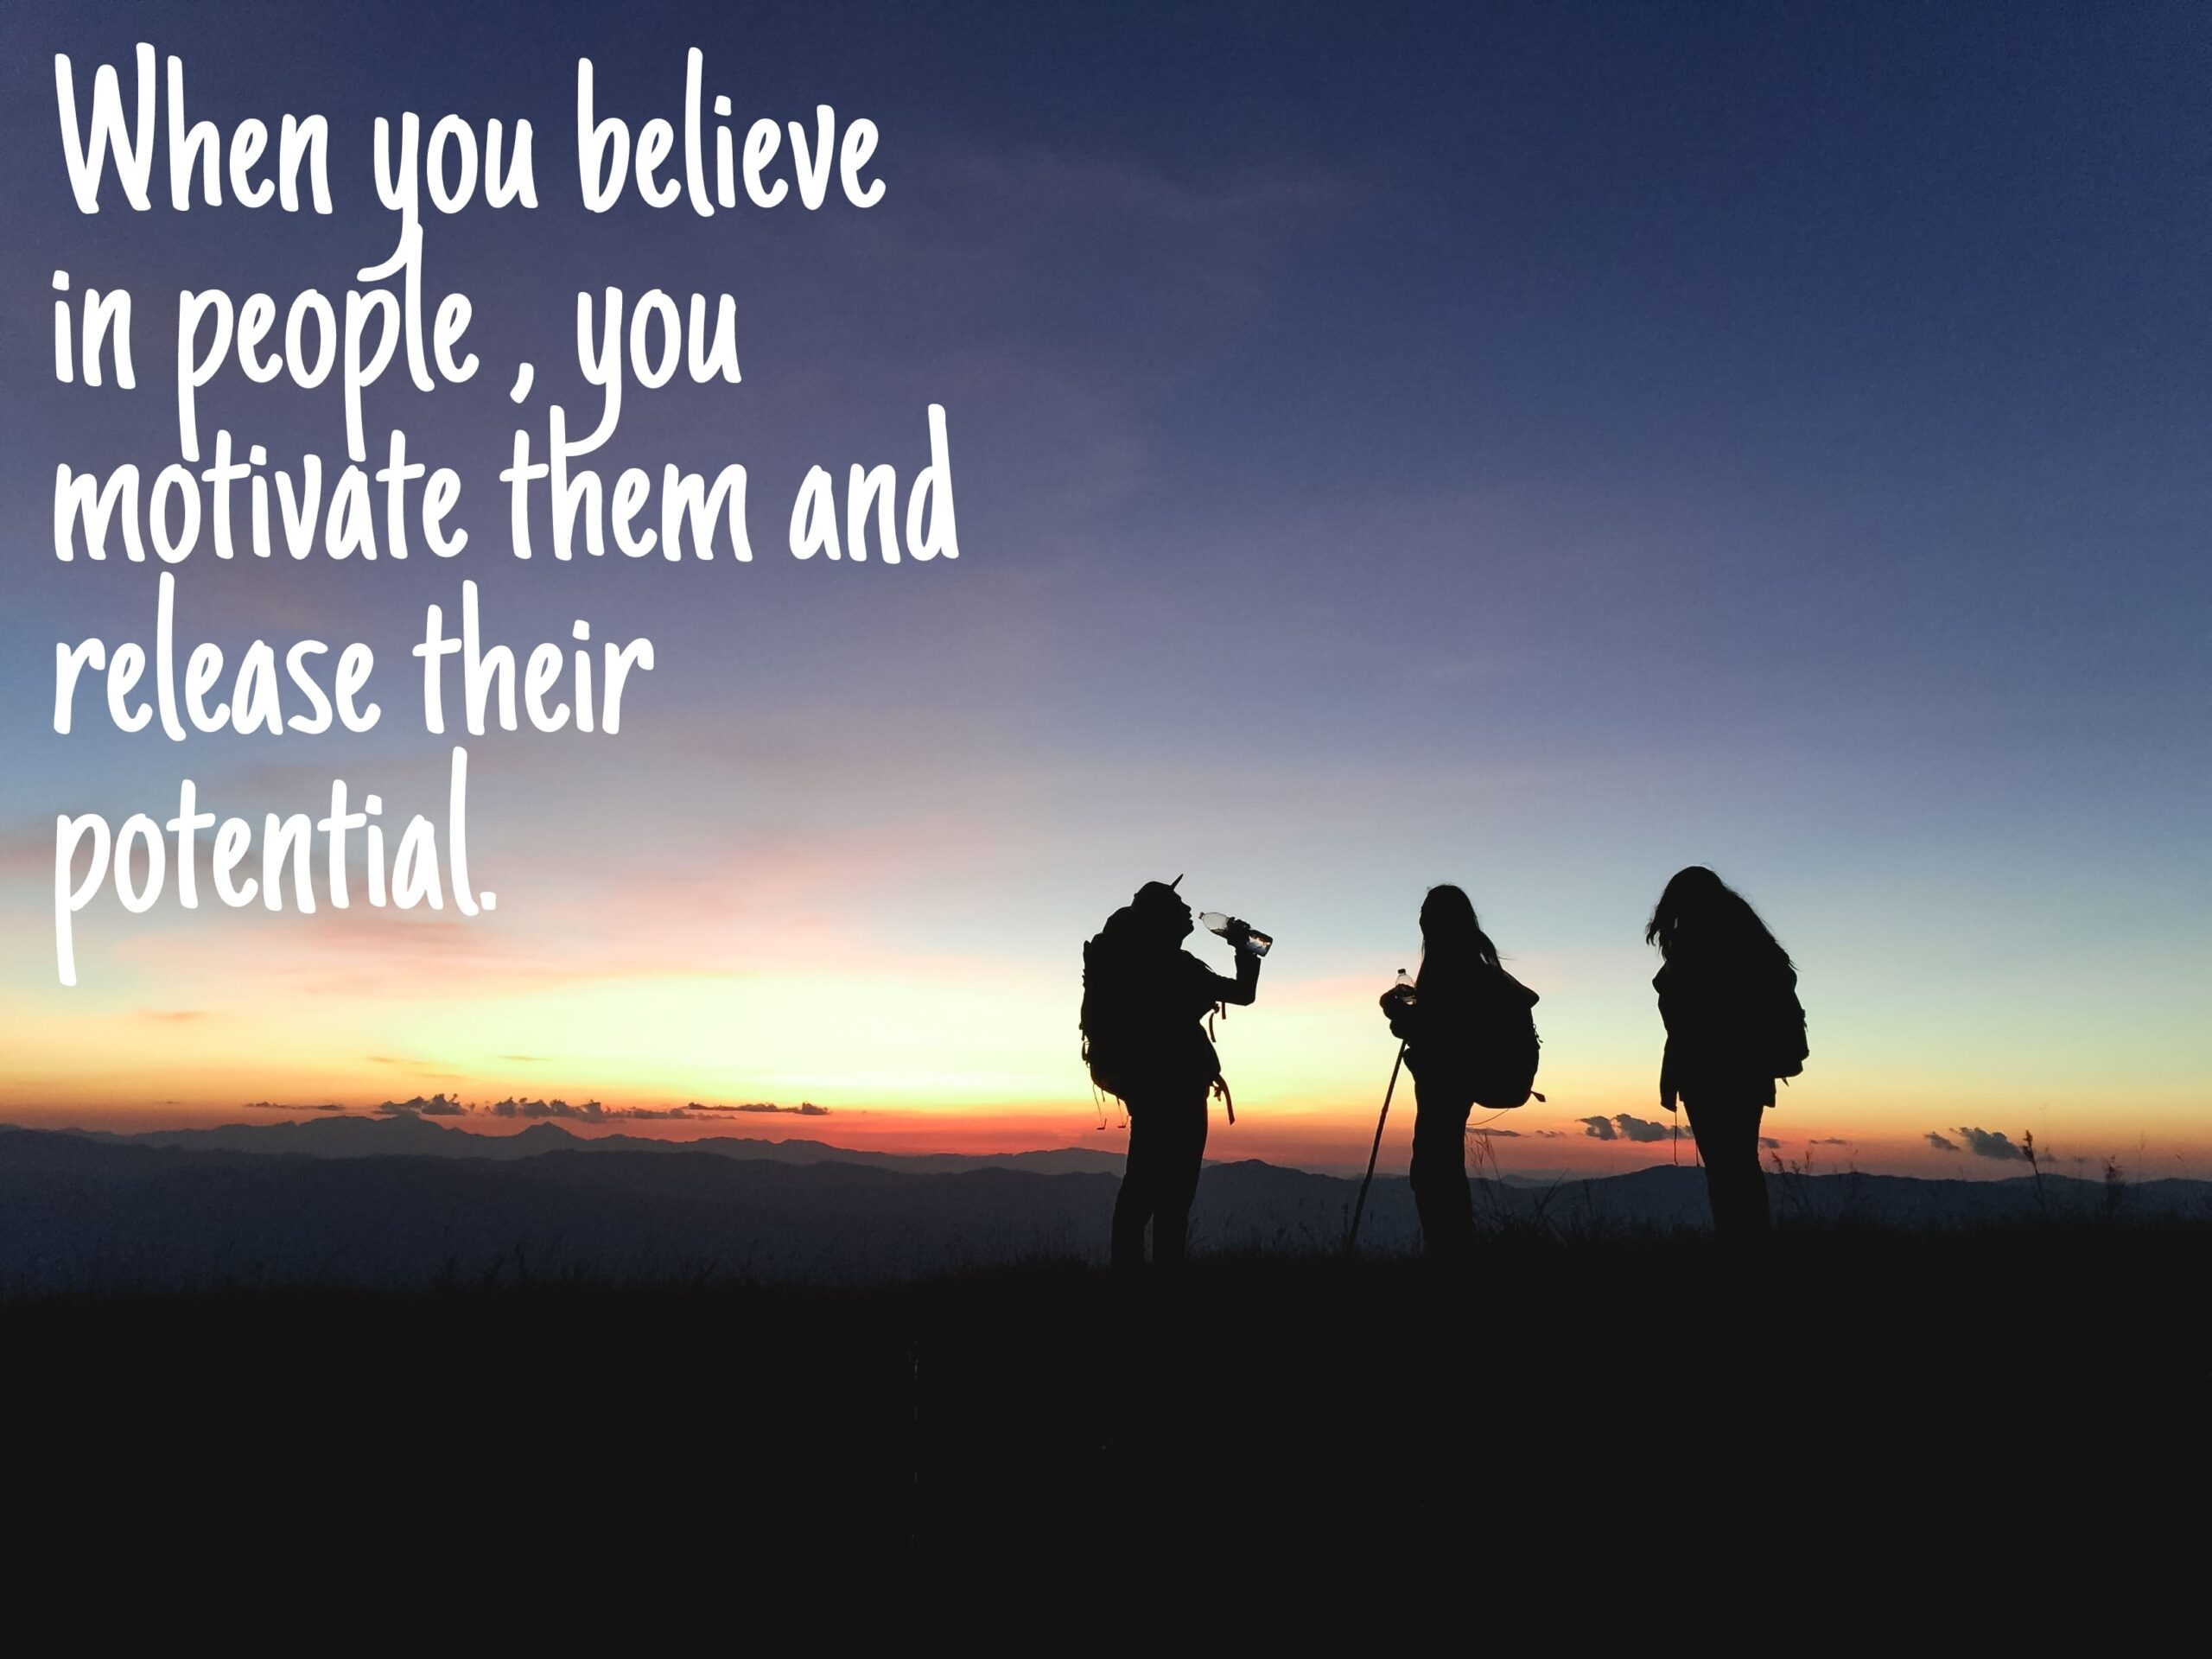 How to believe in others people's potential? 3